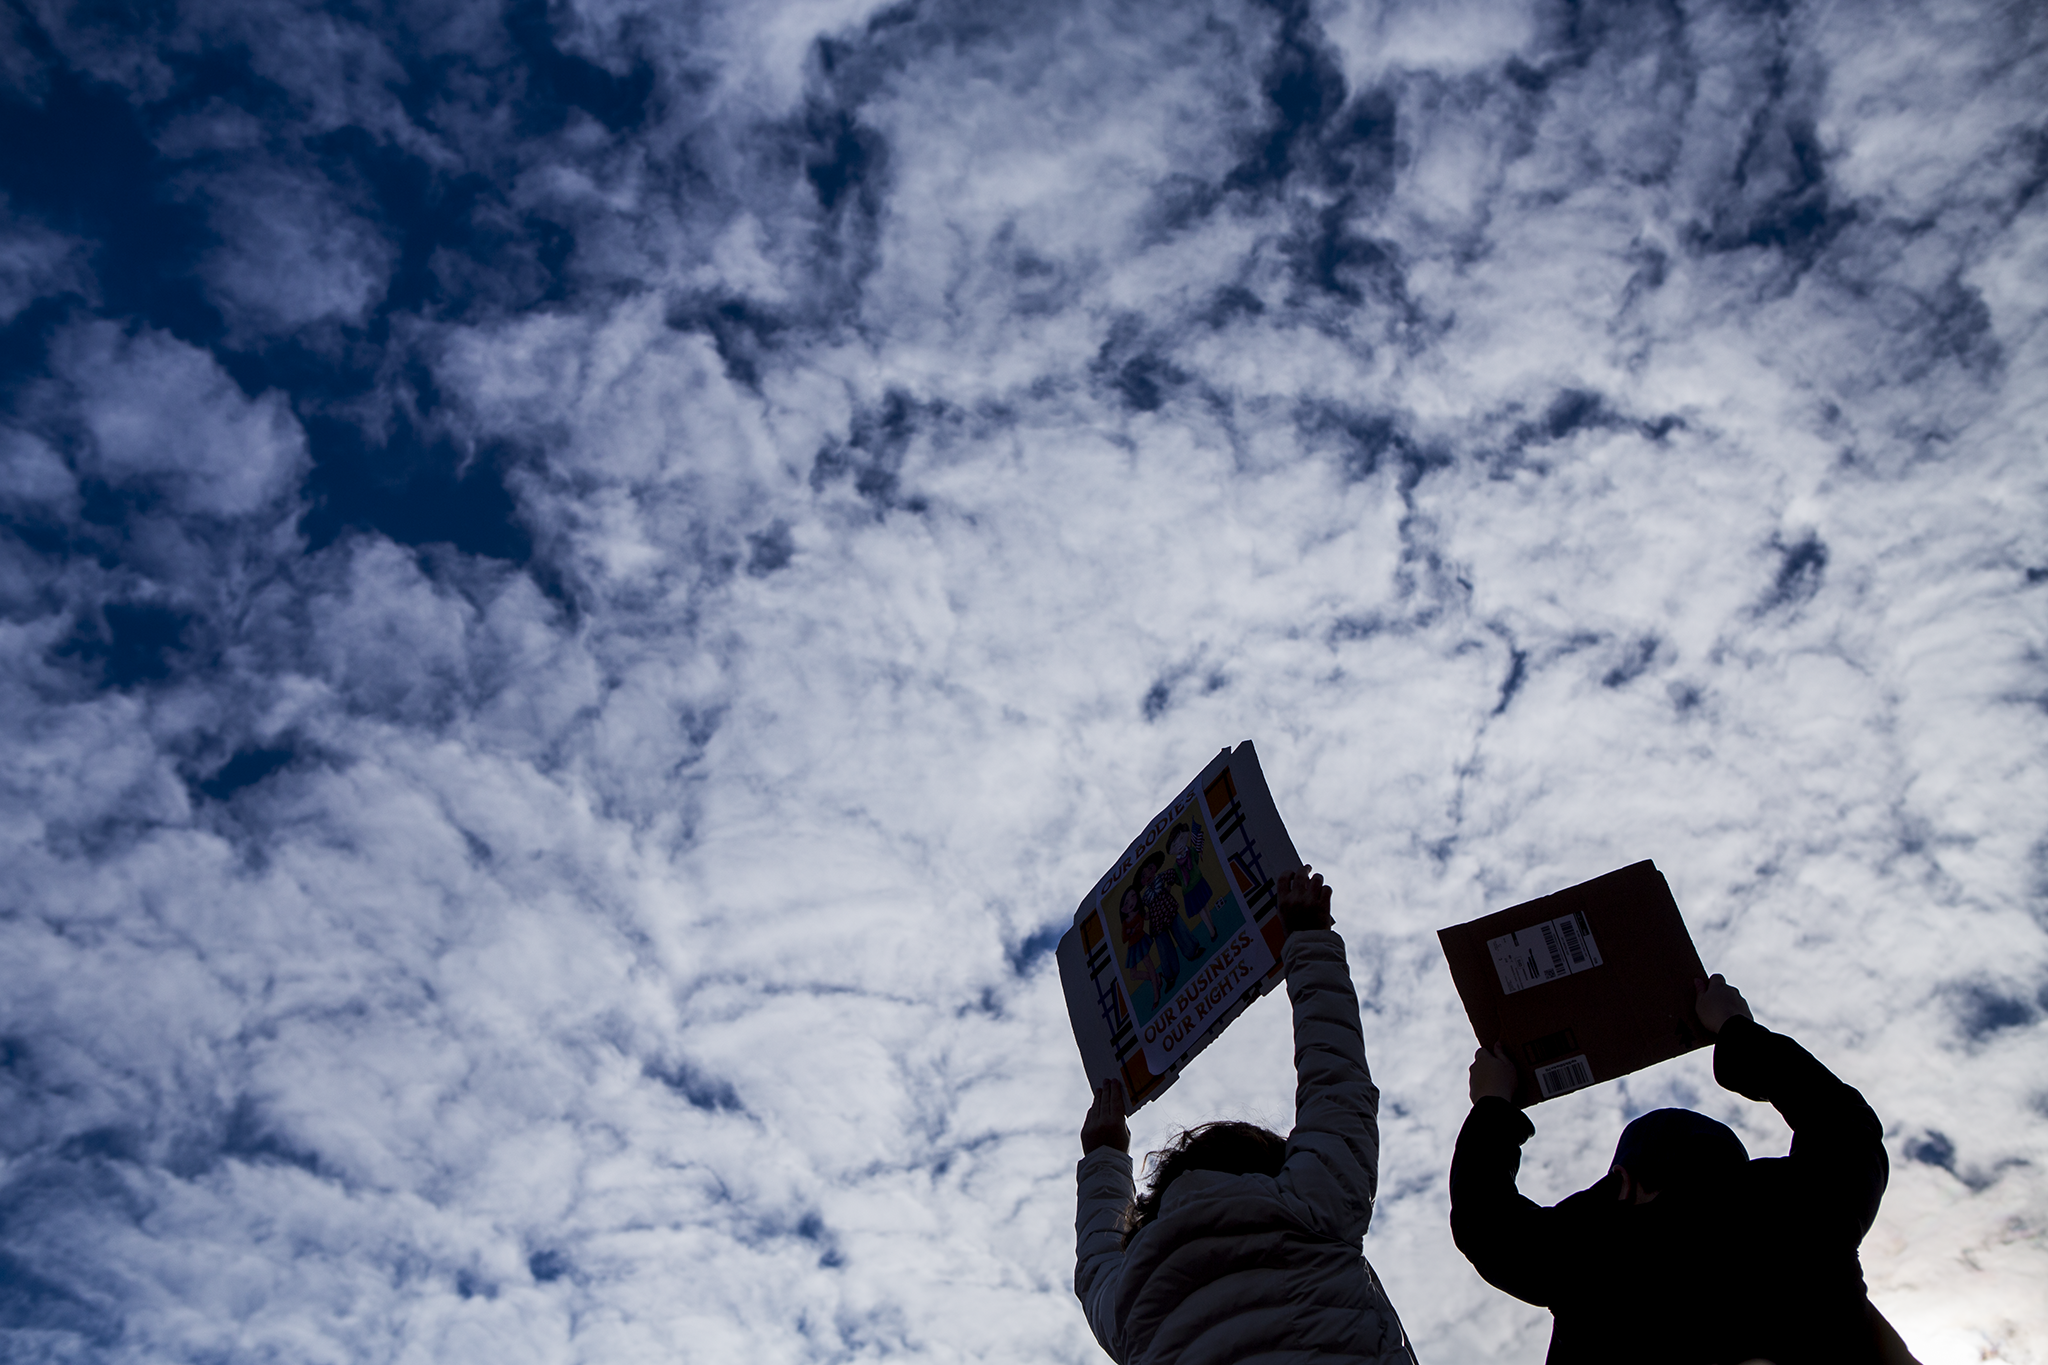 Two women hold up signs agains a patchy blue sky at the women's march on washington on Boston common